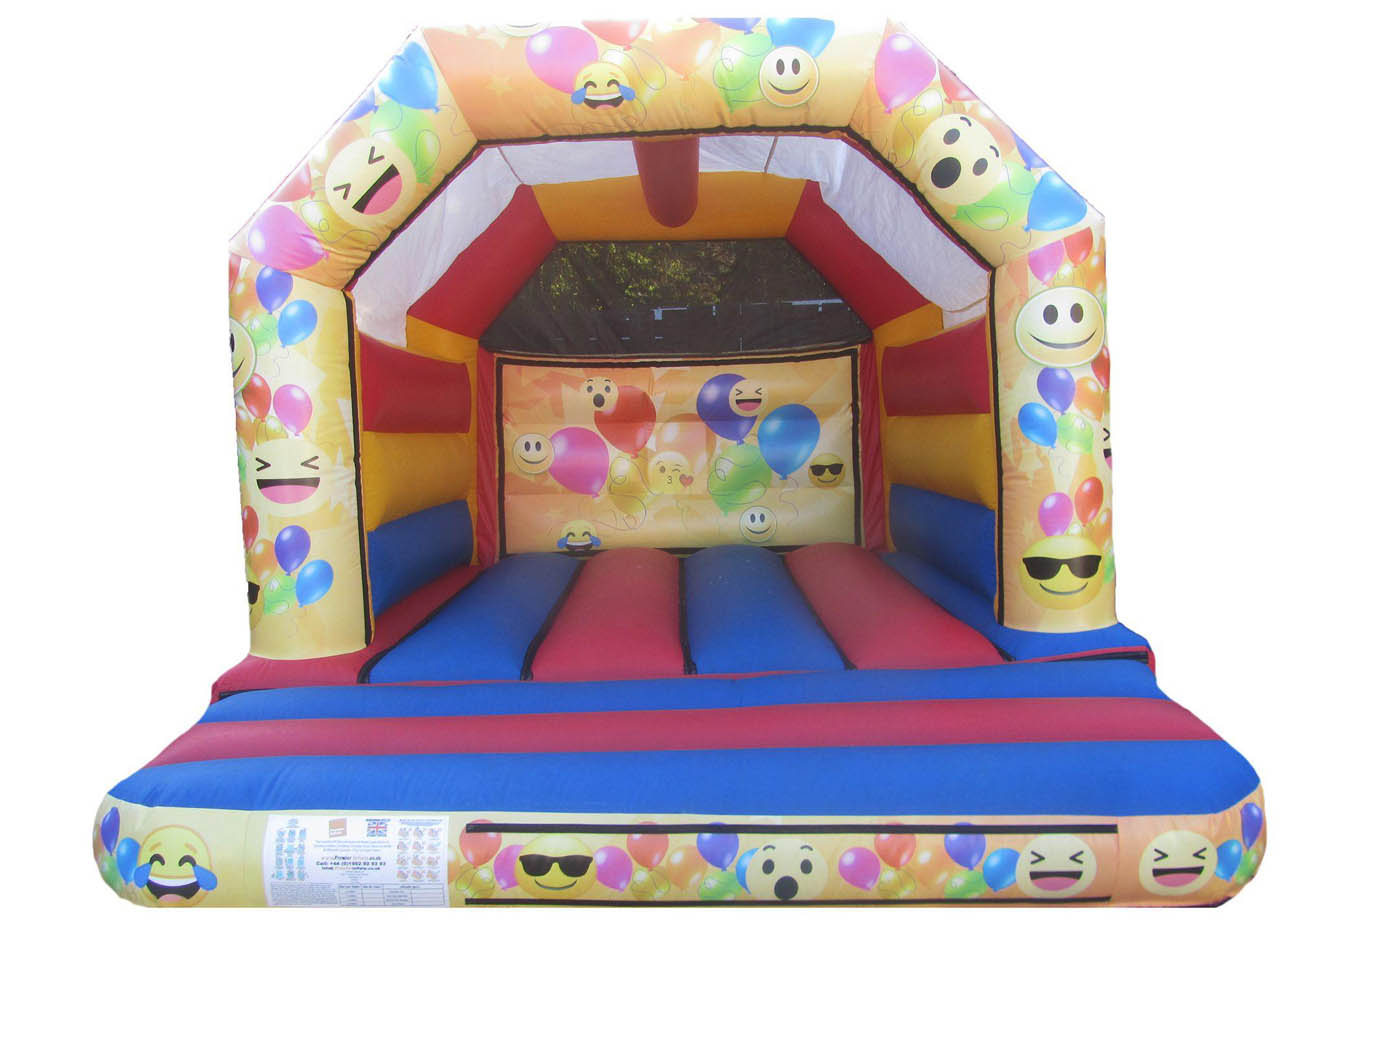 Commercial Childrens Bouncy Castle with Velcro and Emoji Themed Artwork